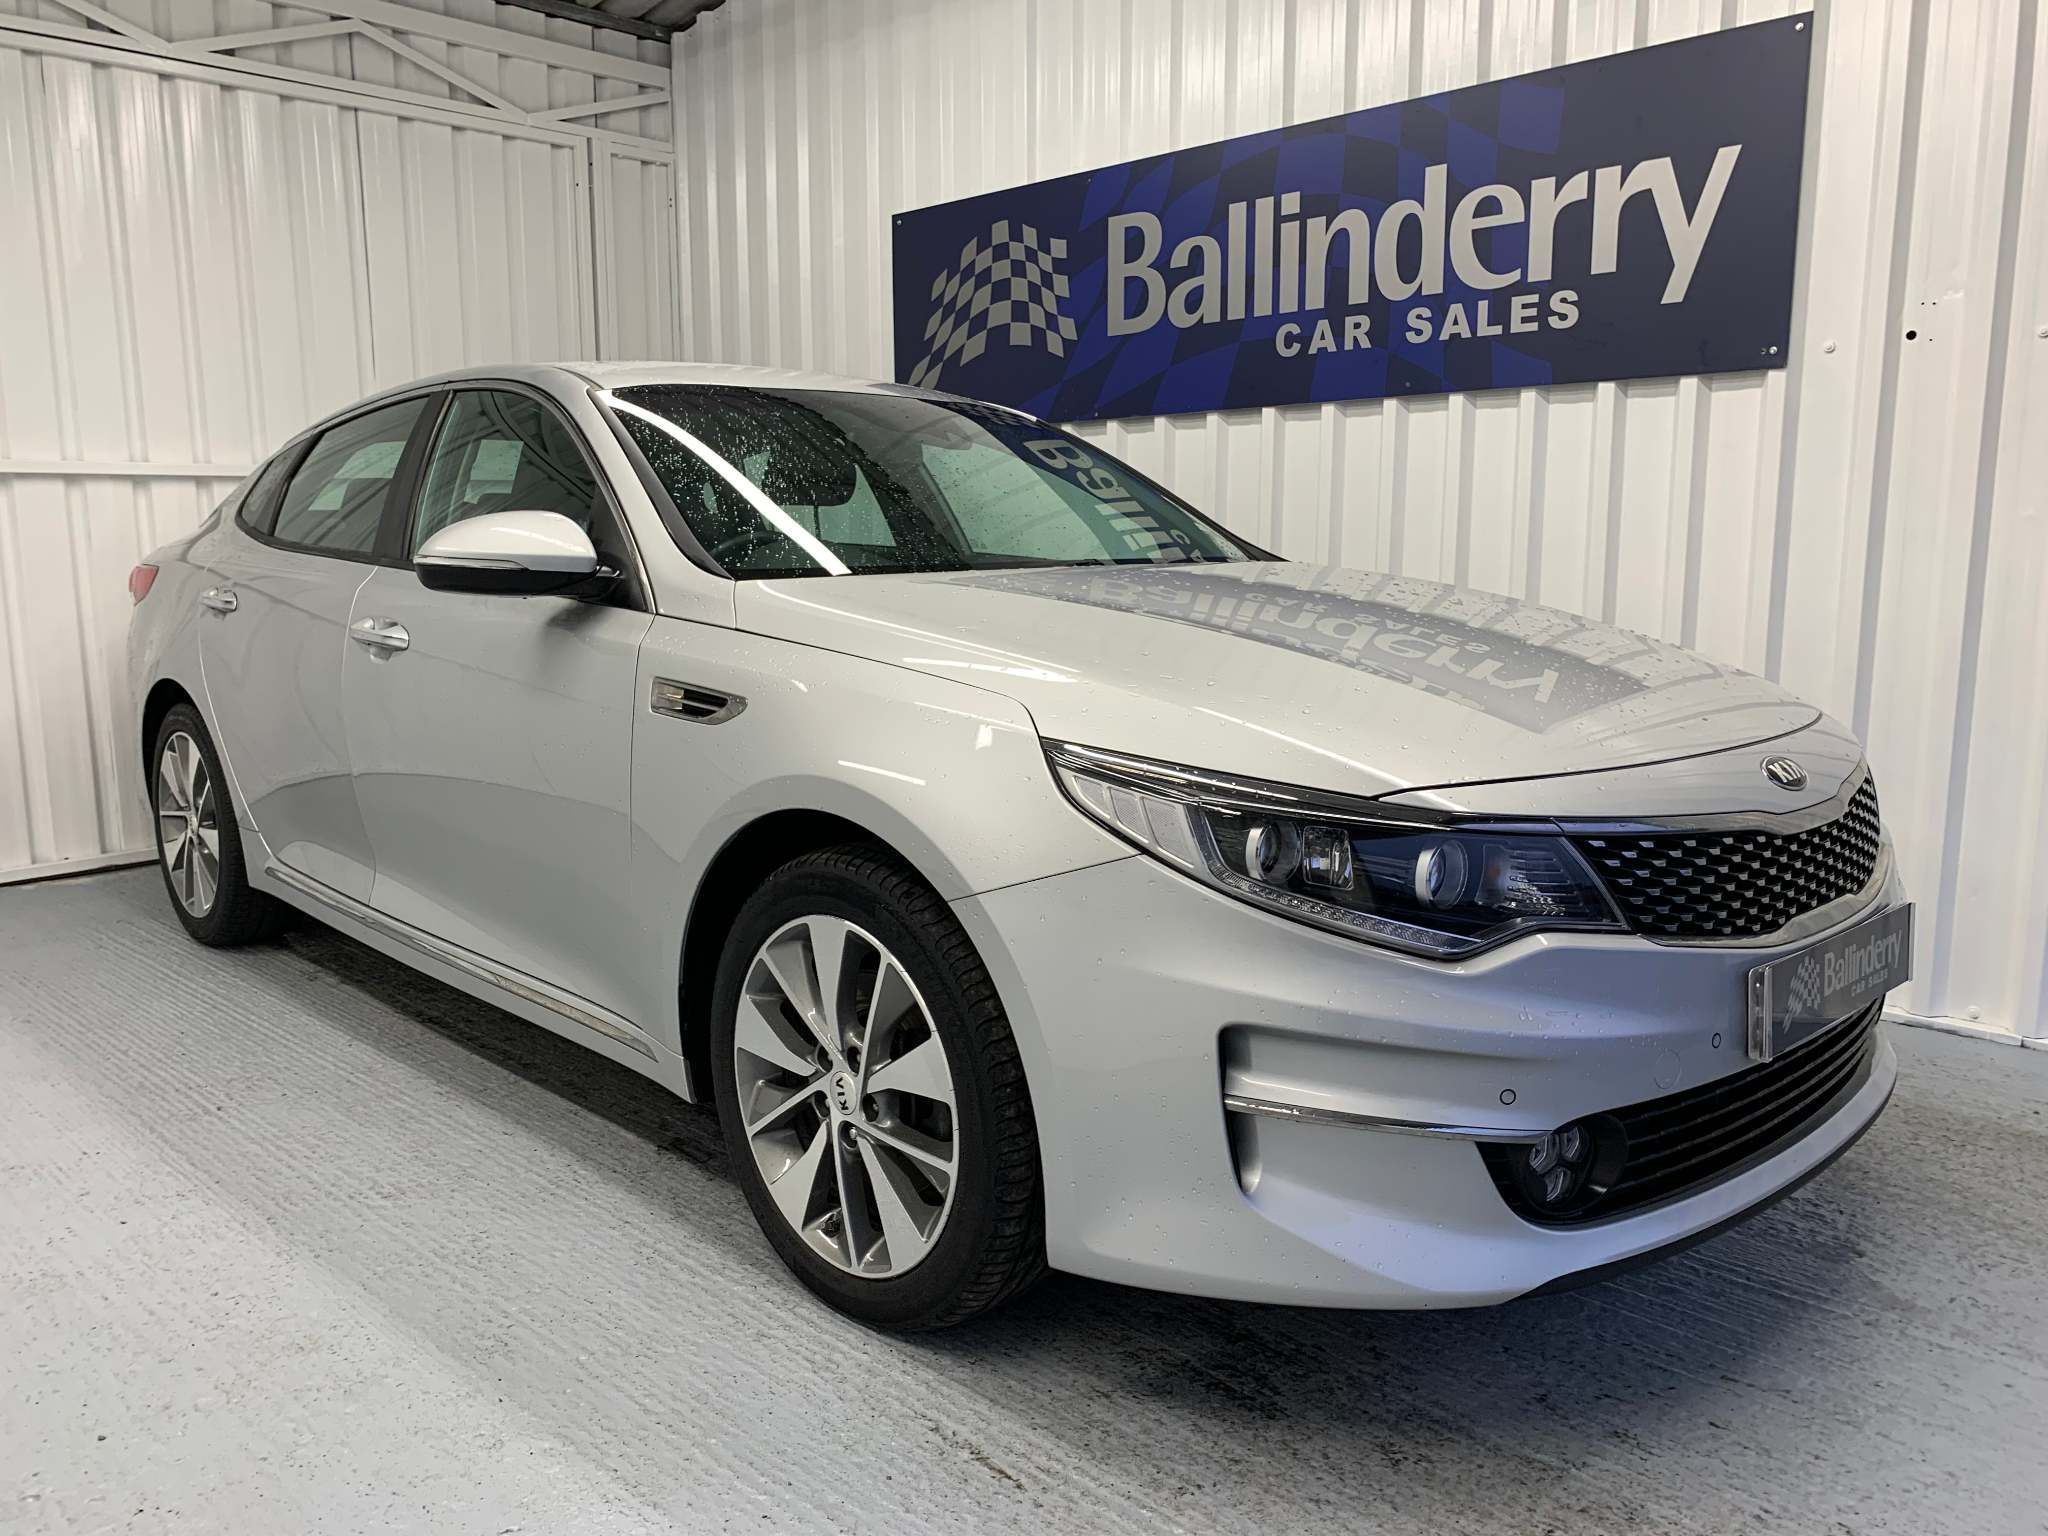 2016 KIA Optima 1.7 CRDi 3 (s/s) Diesel Manual SAT NAV-HALF LEATHER  SEATS – Ballinderry Car Sales Moira